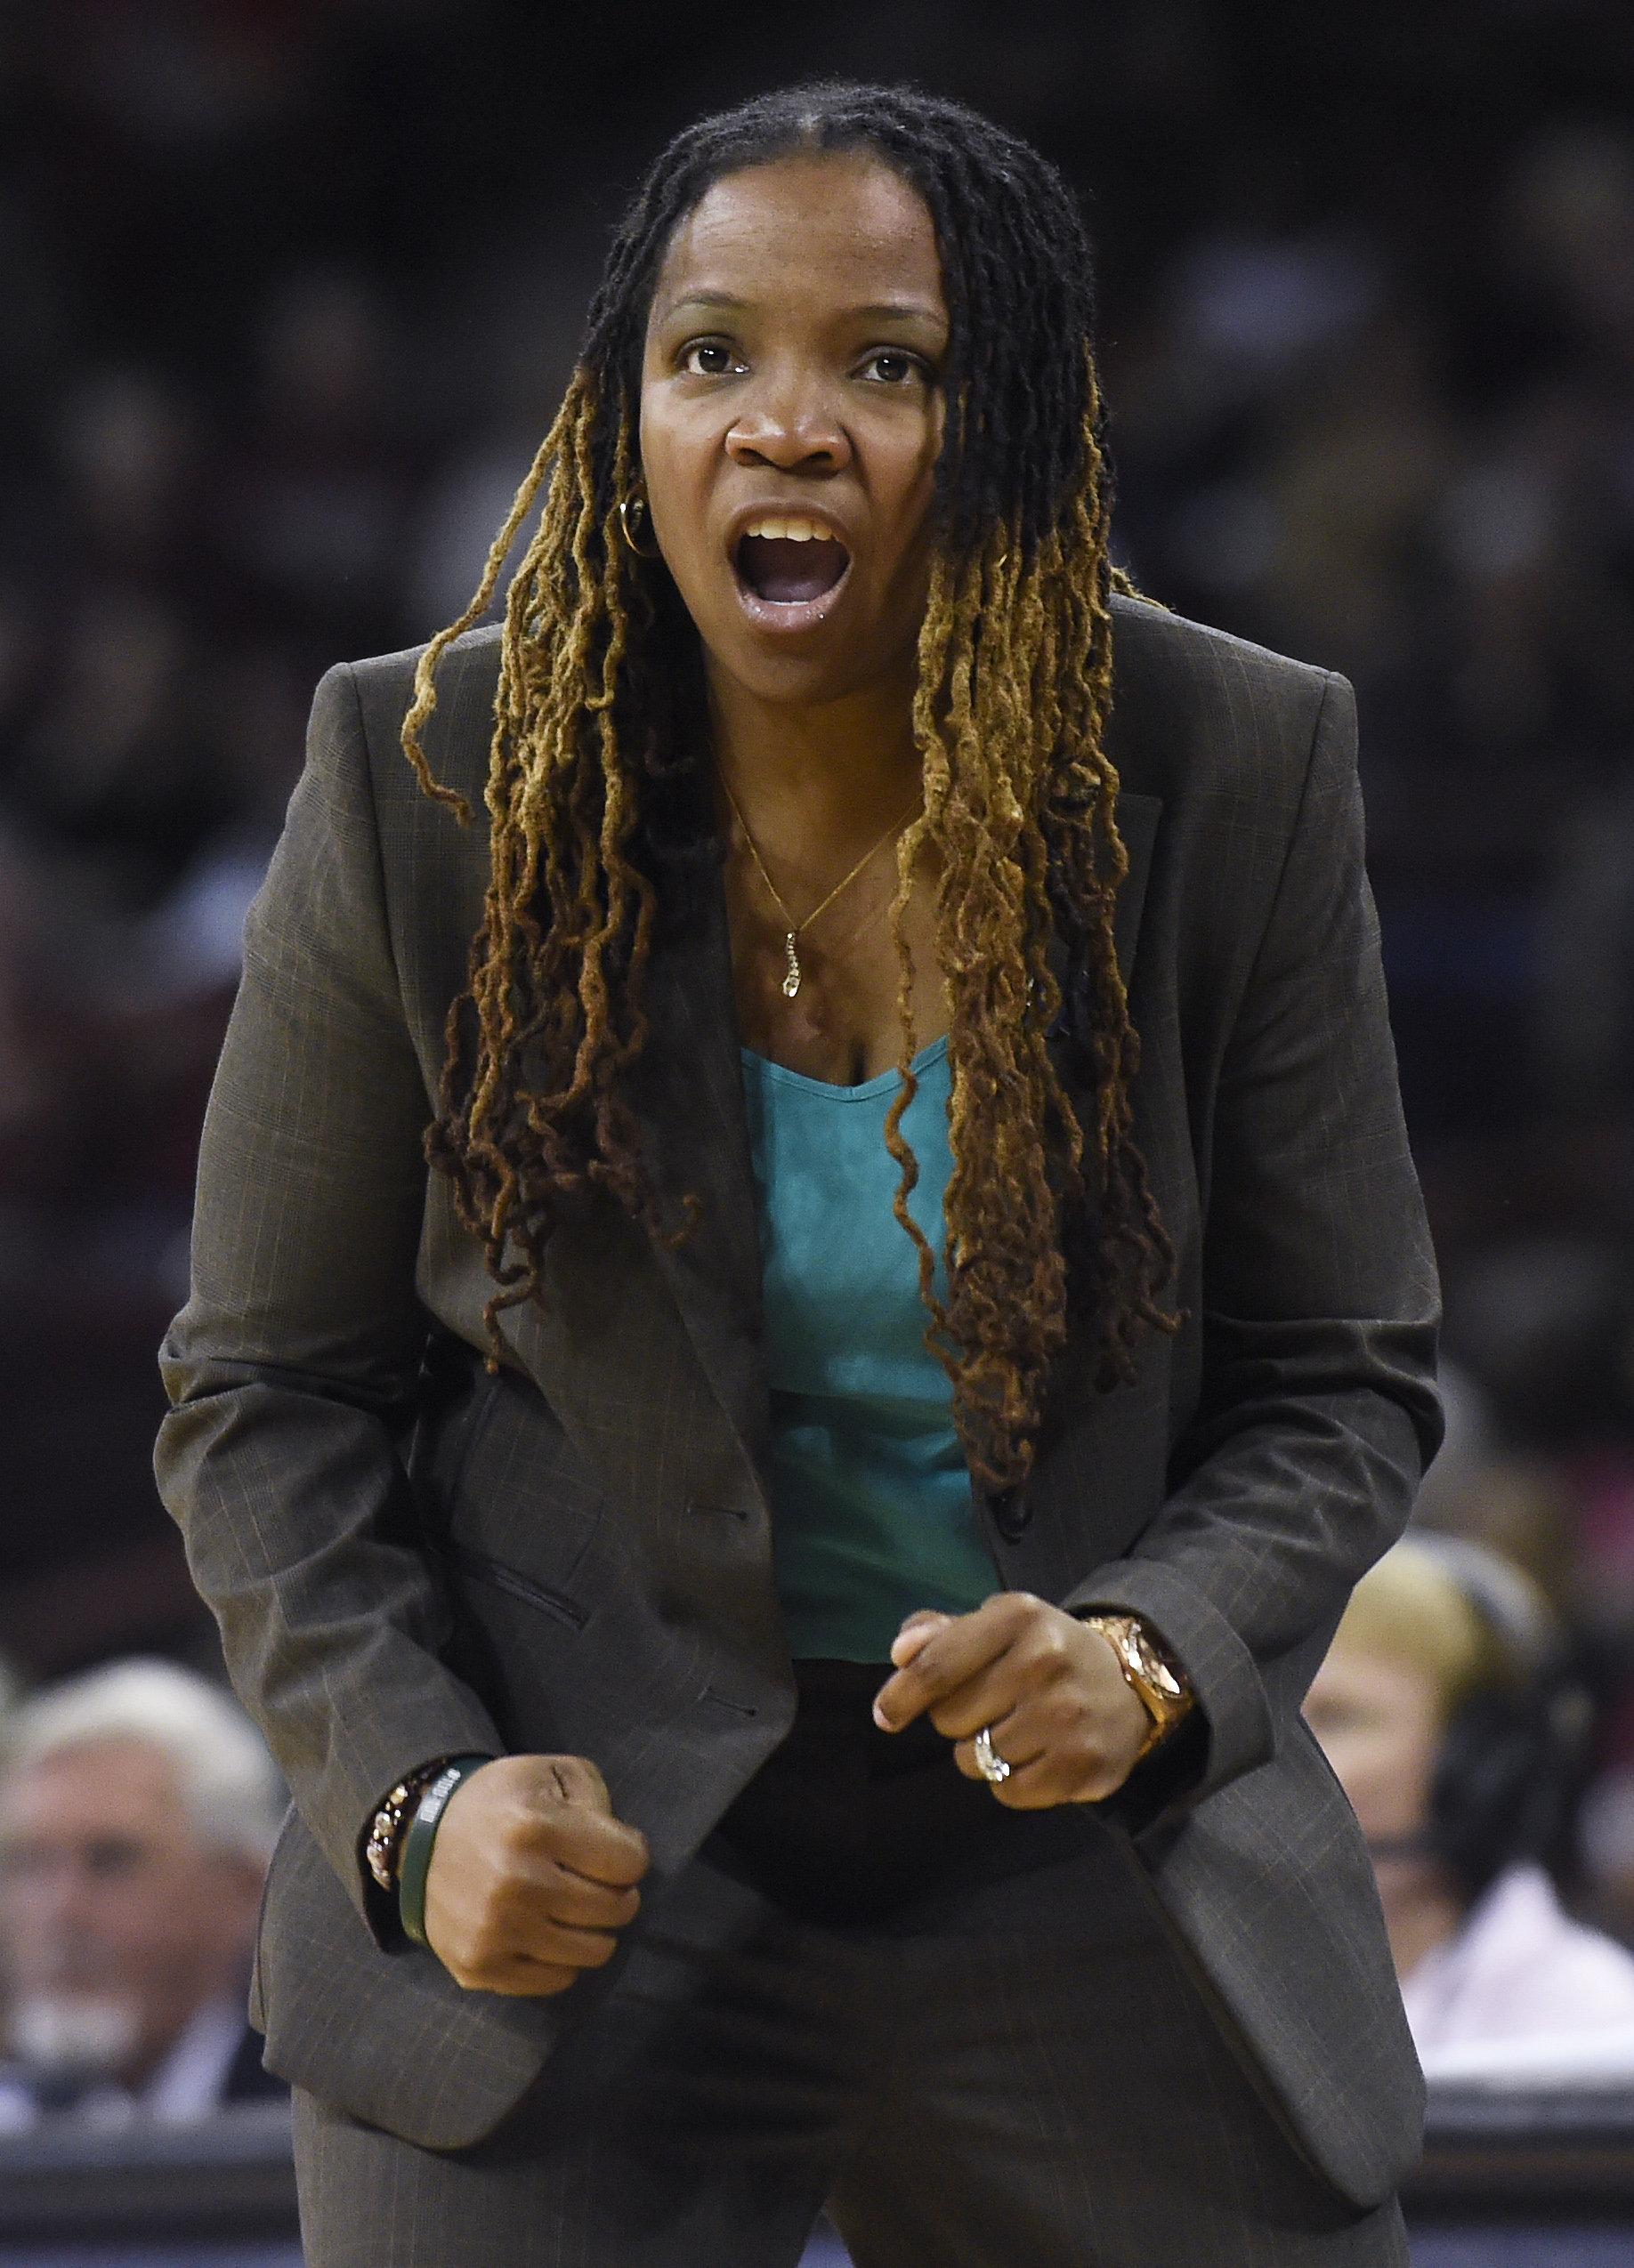 Jacksonville head coach Yolett McPhee-McCuin gives directions to her players during a first-round women's college basketball game against South Carolina in the NCAA Tournament on Friday, March 18, 2016, in Columbia, S.C. (AP Photo/Rainier Ehrhardt)